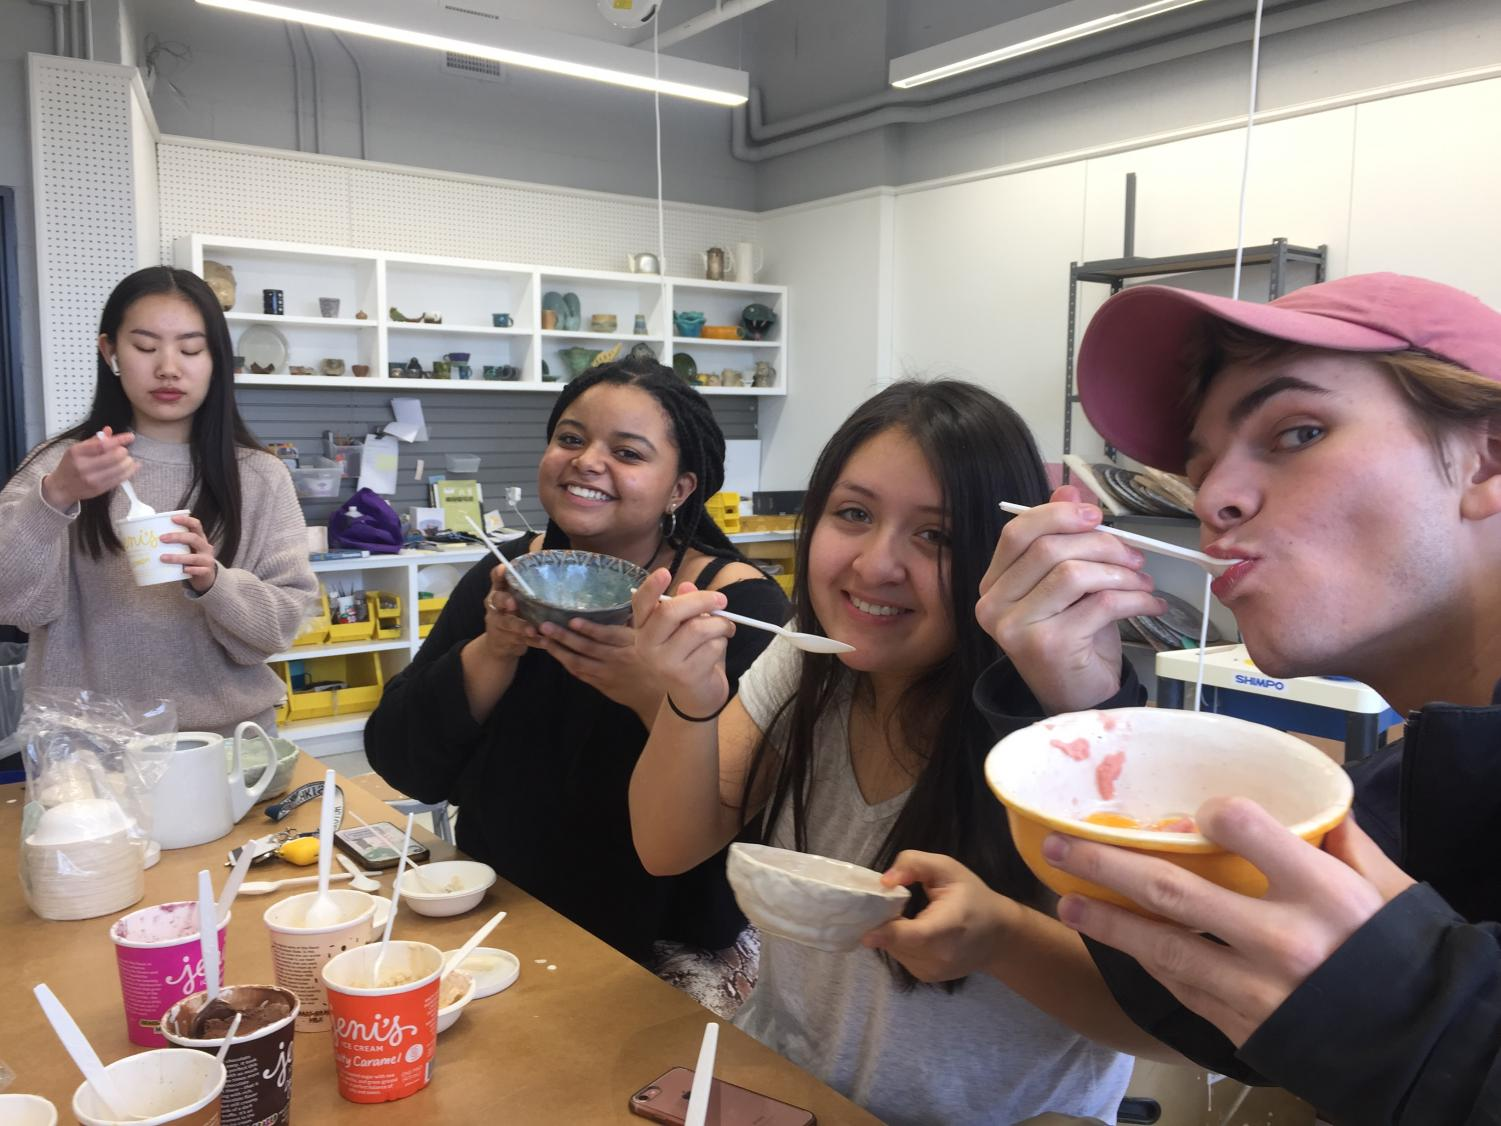 Students enrolled in the winter ceramics co-curricular held a Senior farewell party to celebrate the end of theseason.